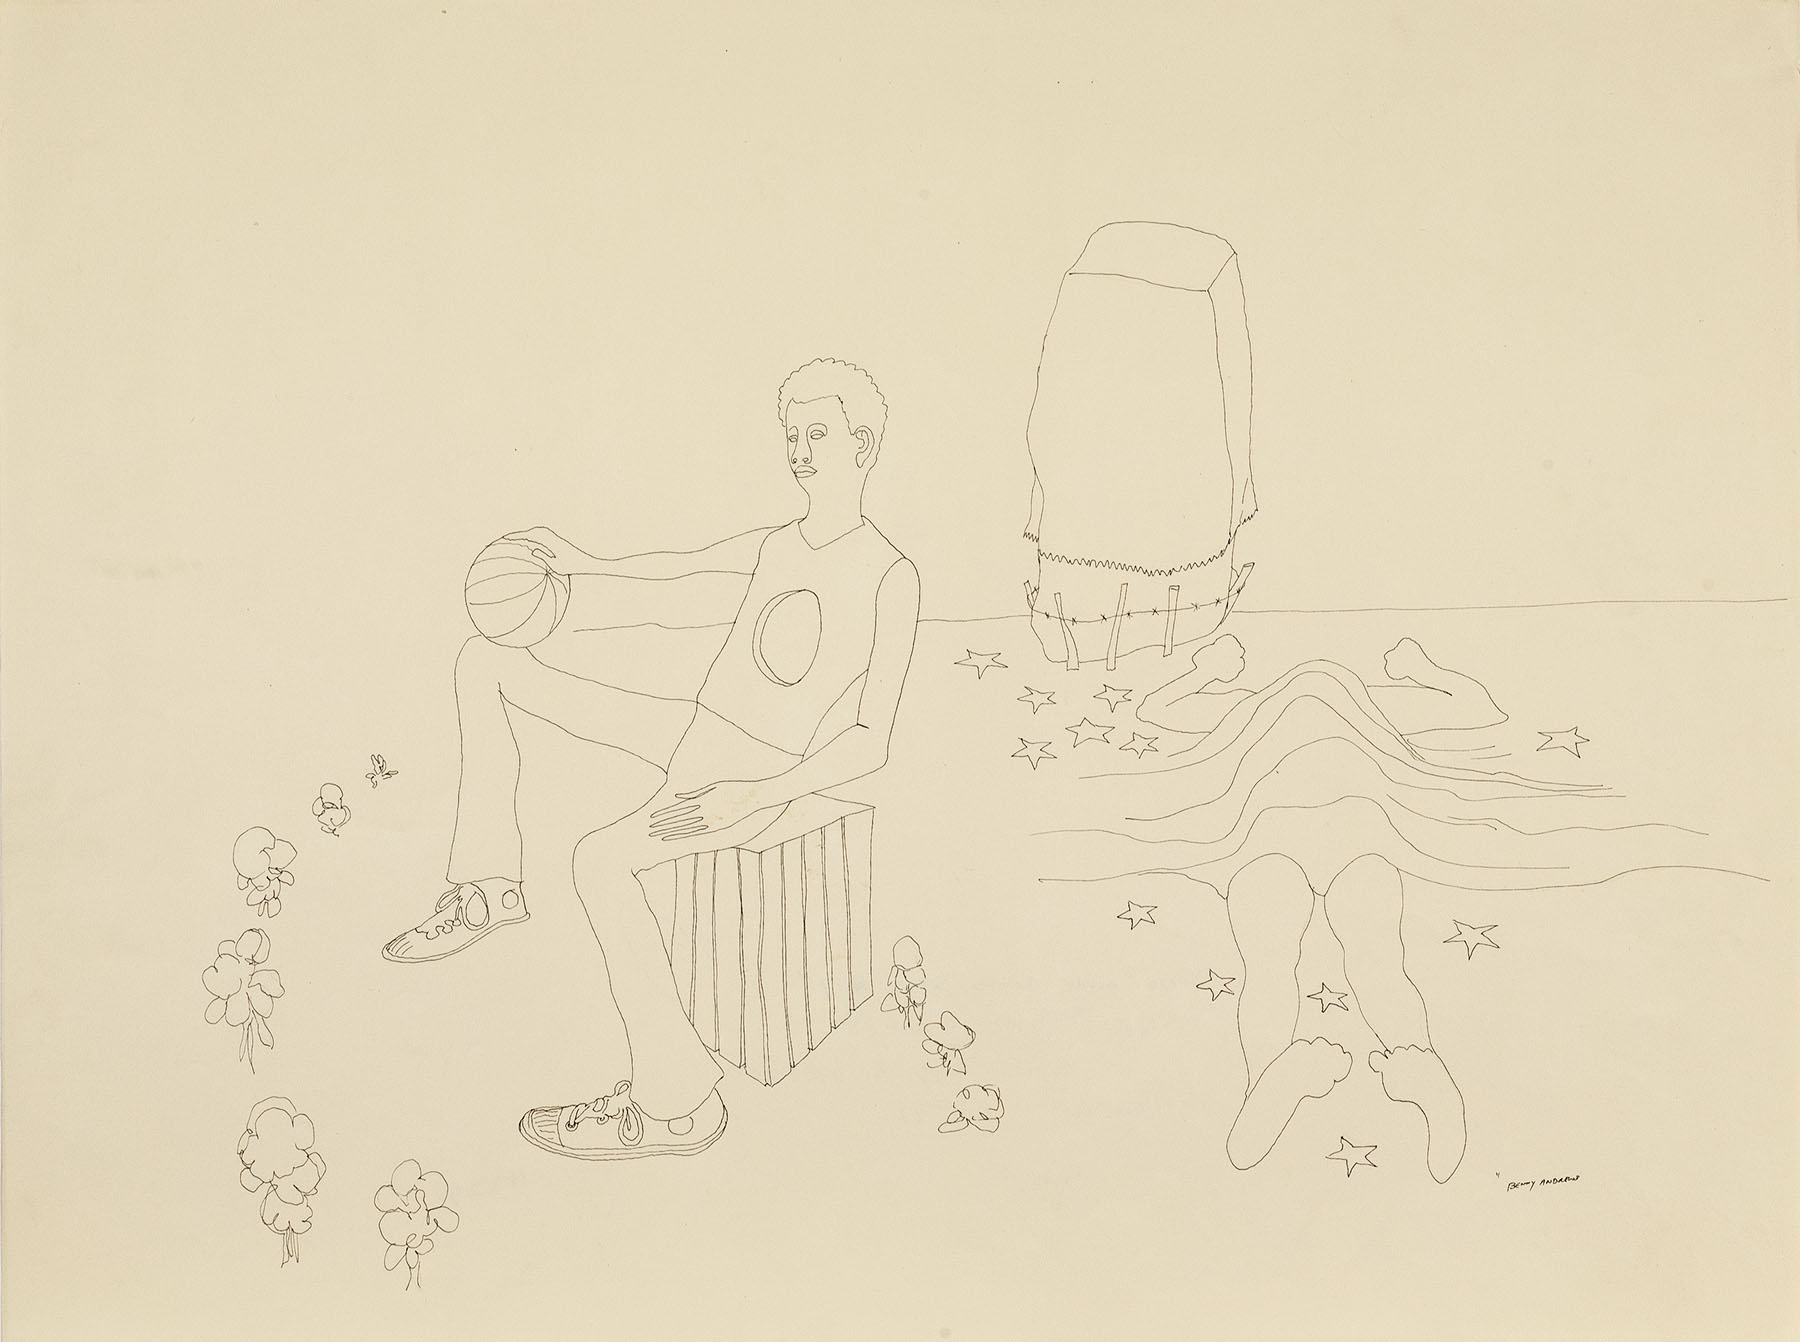 """""""The Ball Game"""" No More Games Study #7, 1970 pen and ink on paper 18 x 24"""""""